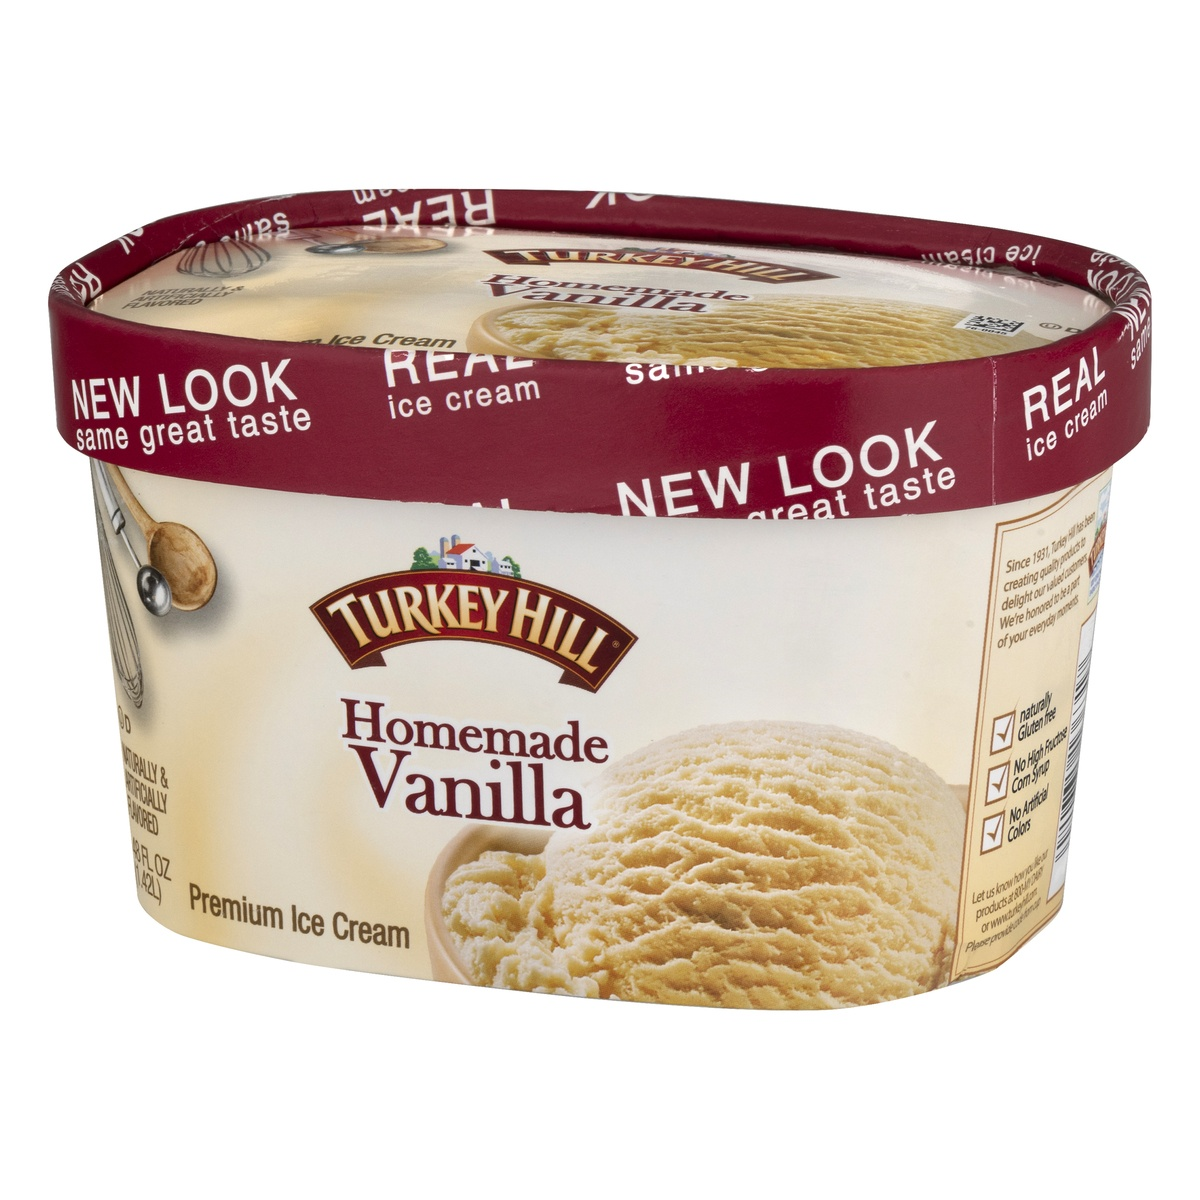 slide 3 of 10, Turkey Hill Ice Cream,